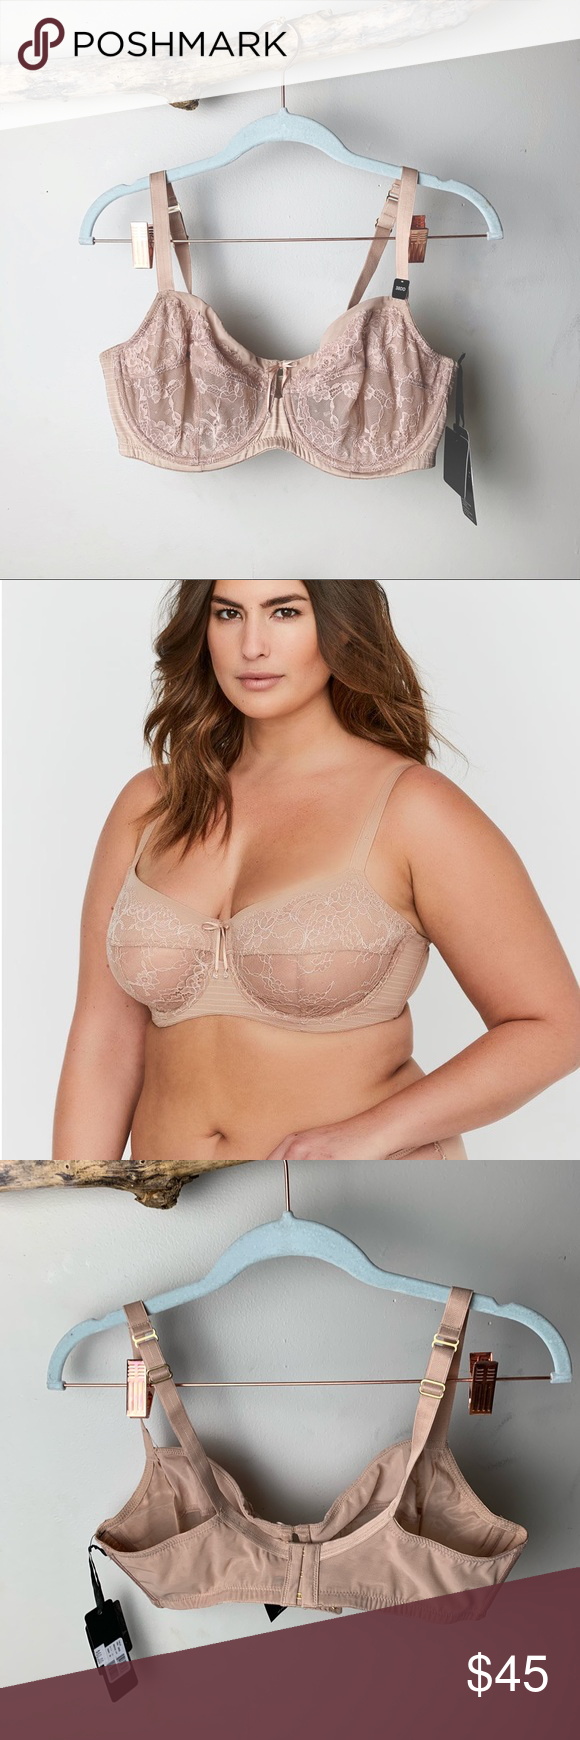 d5472c9562 NWT ASHLEY GRAHAM Fatal Attraction Unlined Bra Unlined non-padded underwire  seamed bra